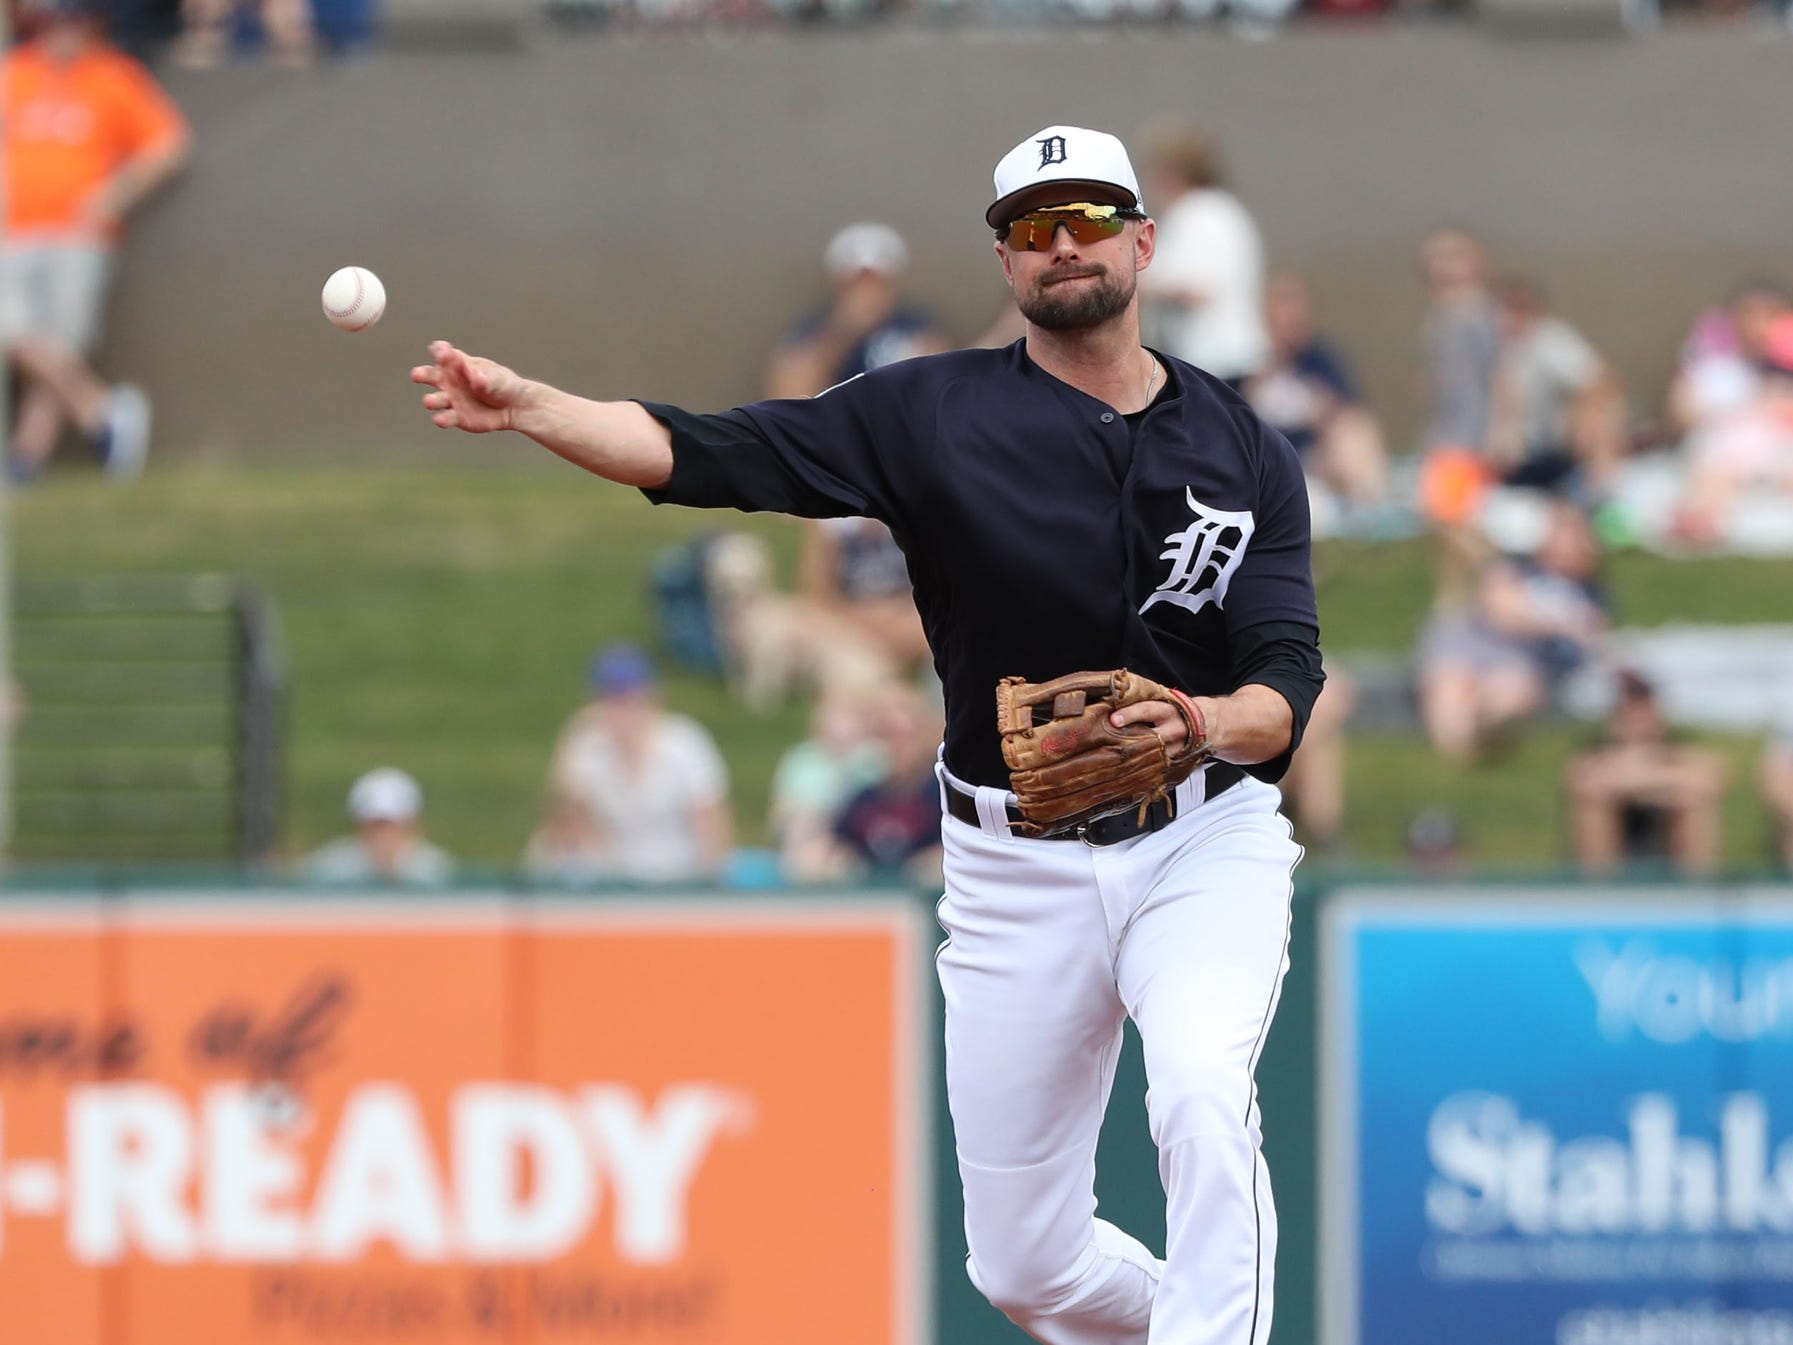 Tigers shortstop Jordy Mercer throws the ball to first base for an out during the first inning against the New York Yankees on Sunday, March 10, 2019, at Joker Marchant Stadium.